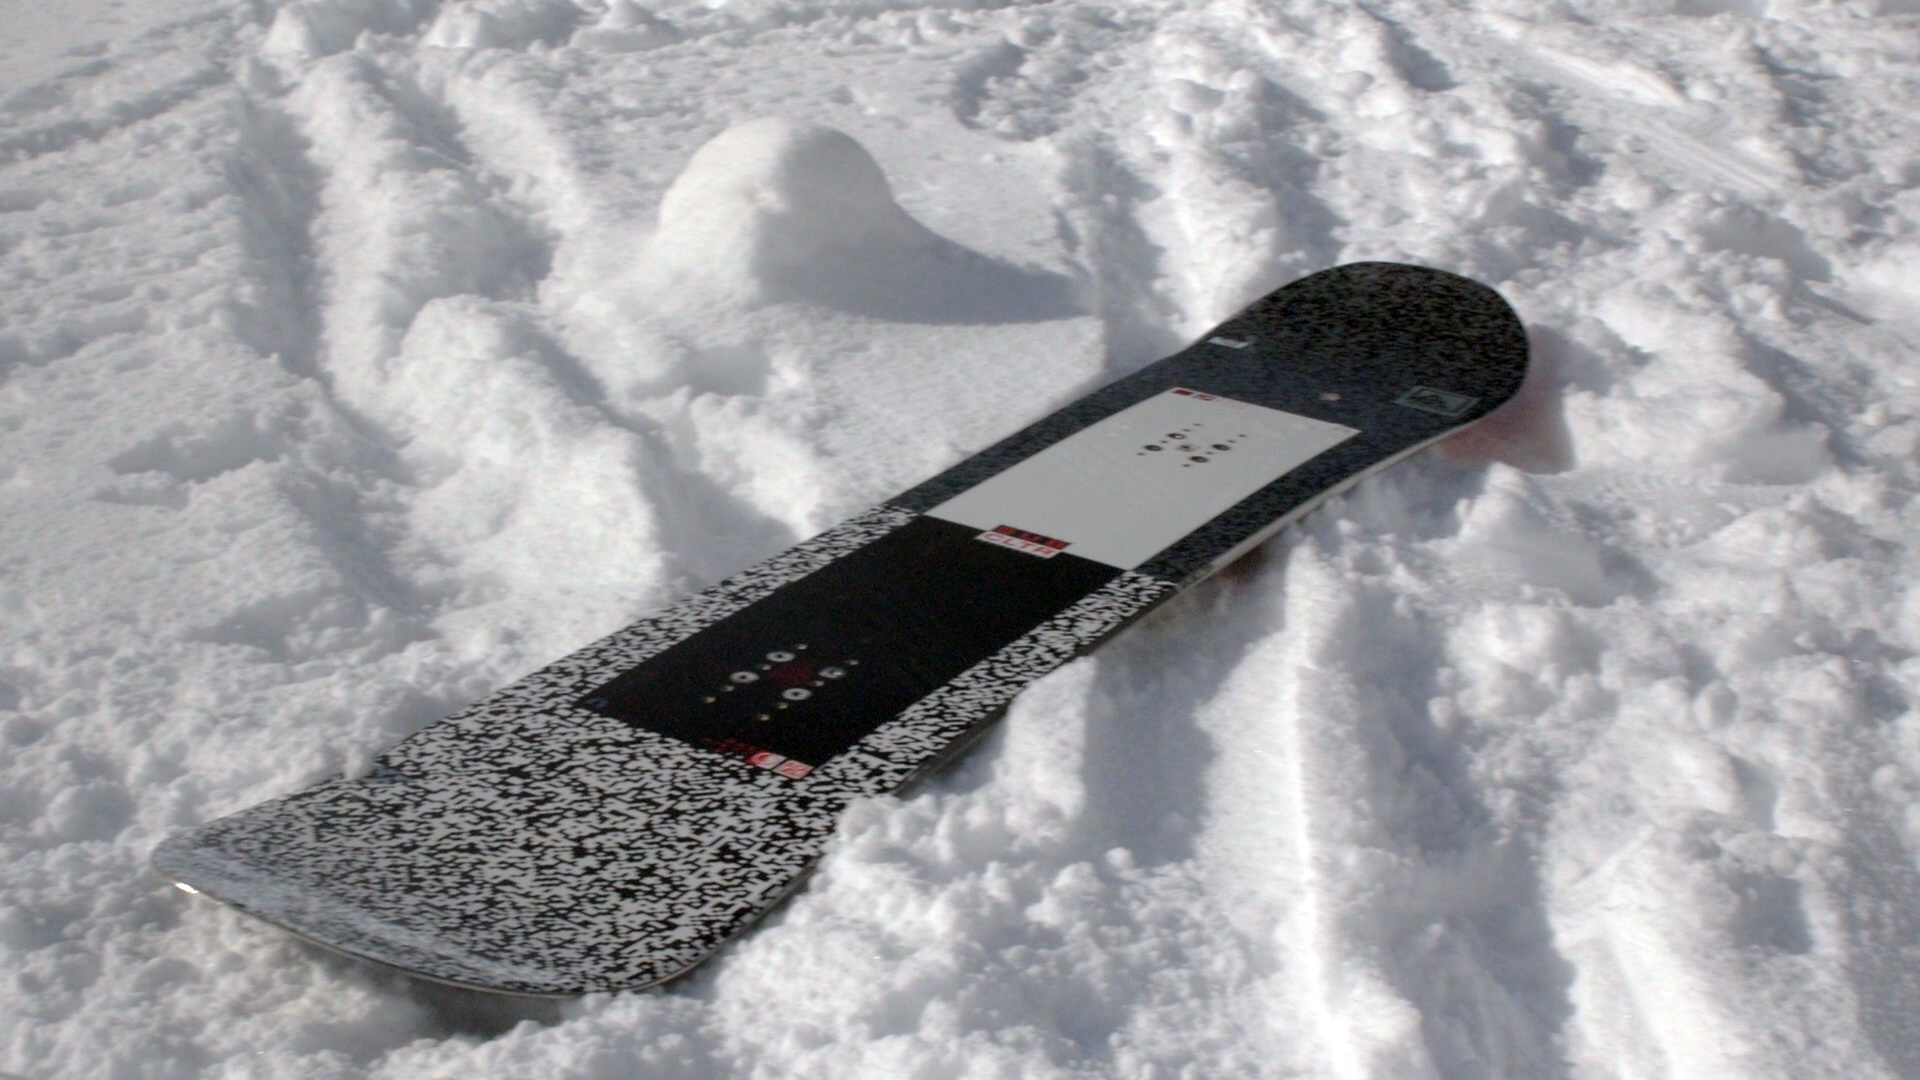 EpicTV Video: The K2 Subculture Snowboard Review 2015/2016